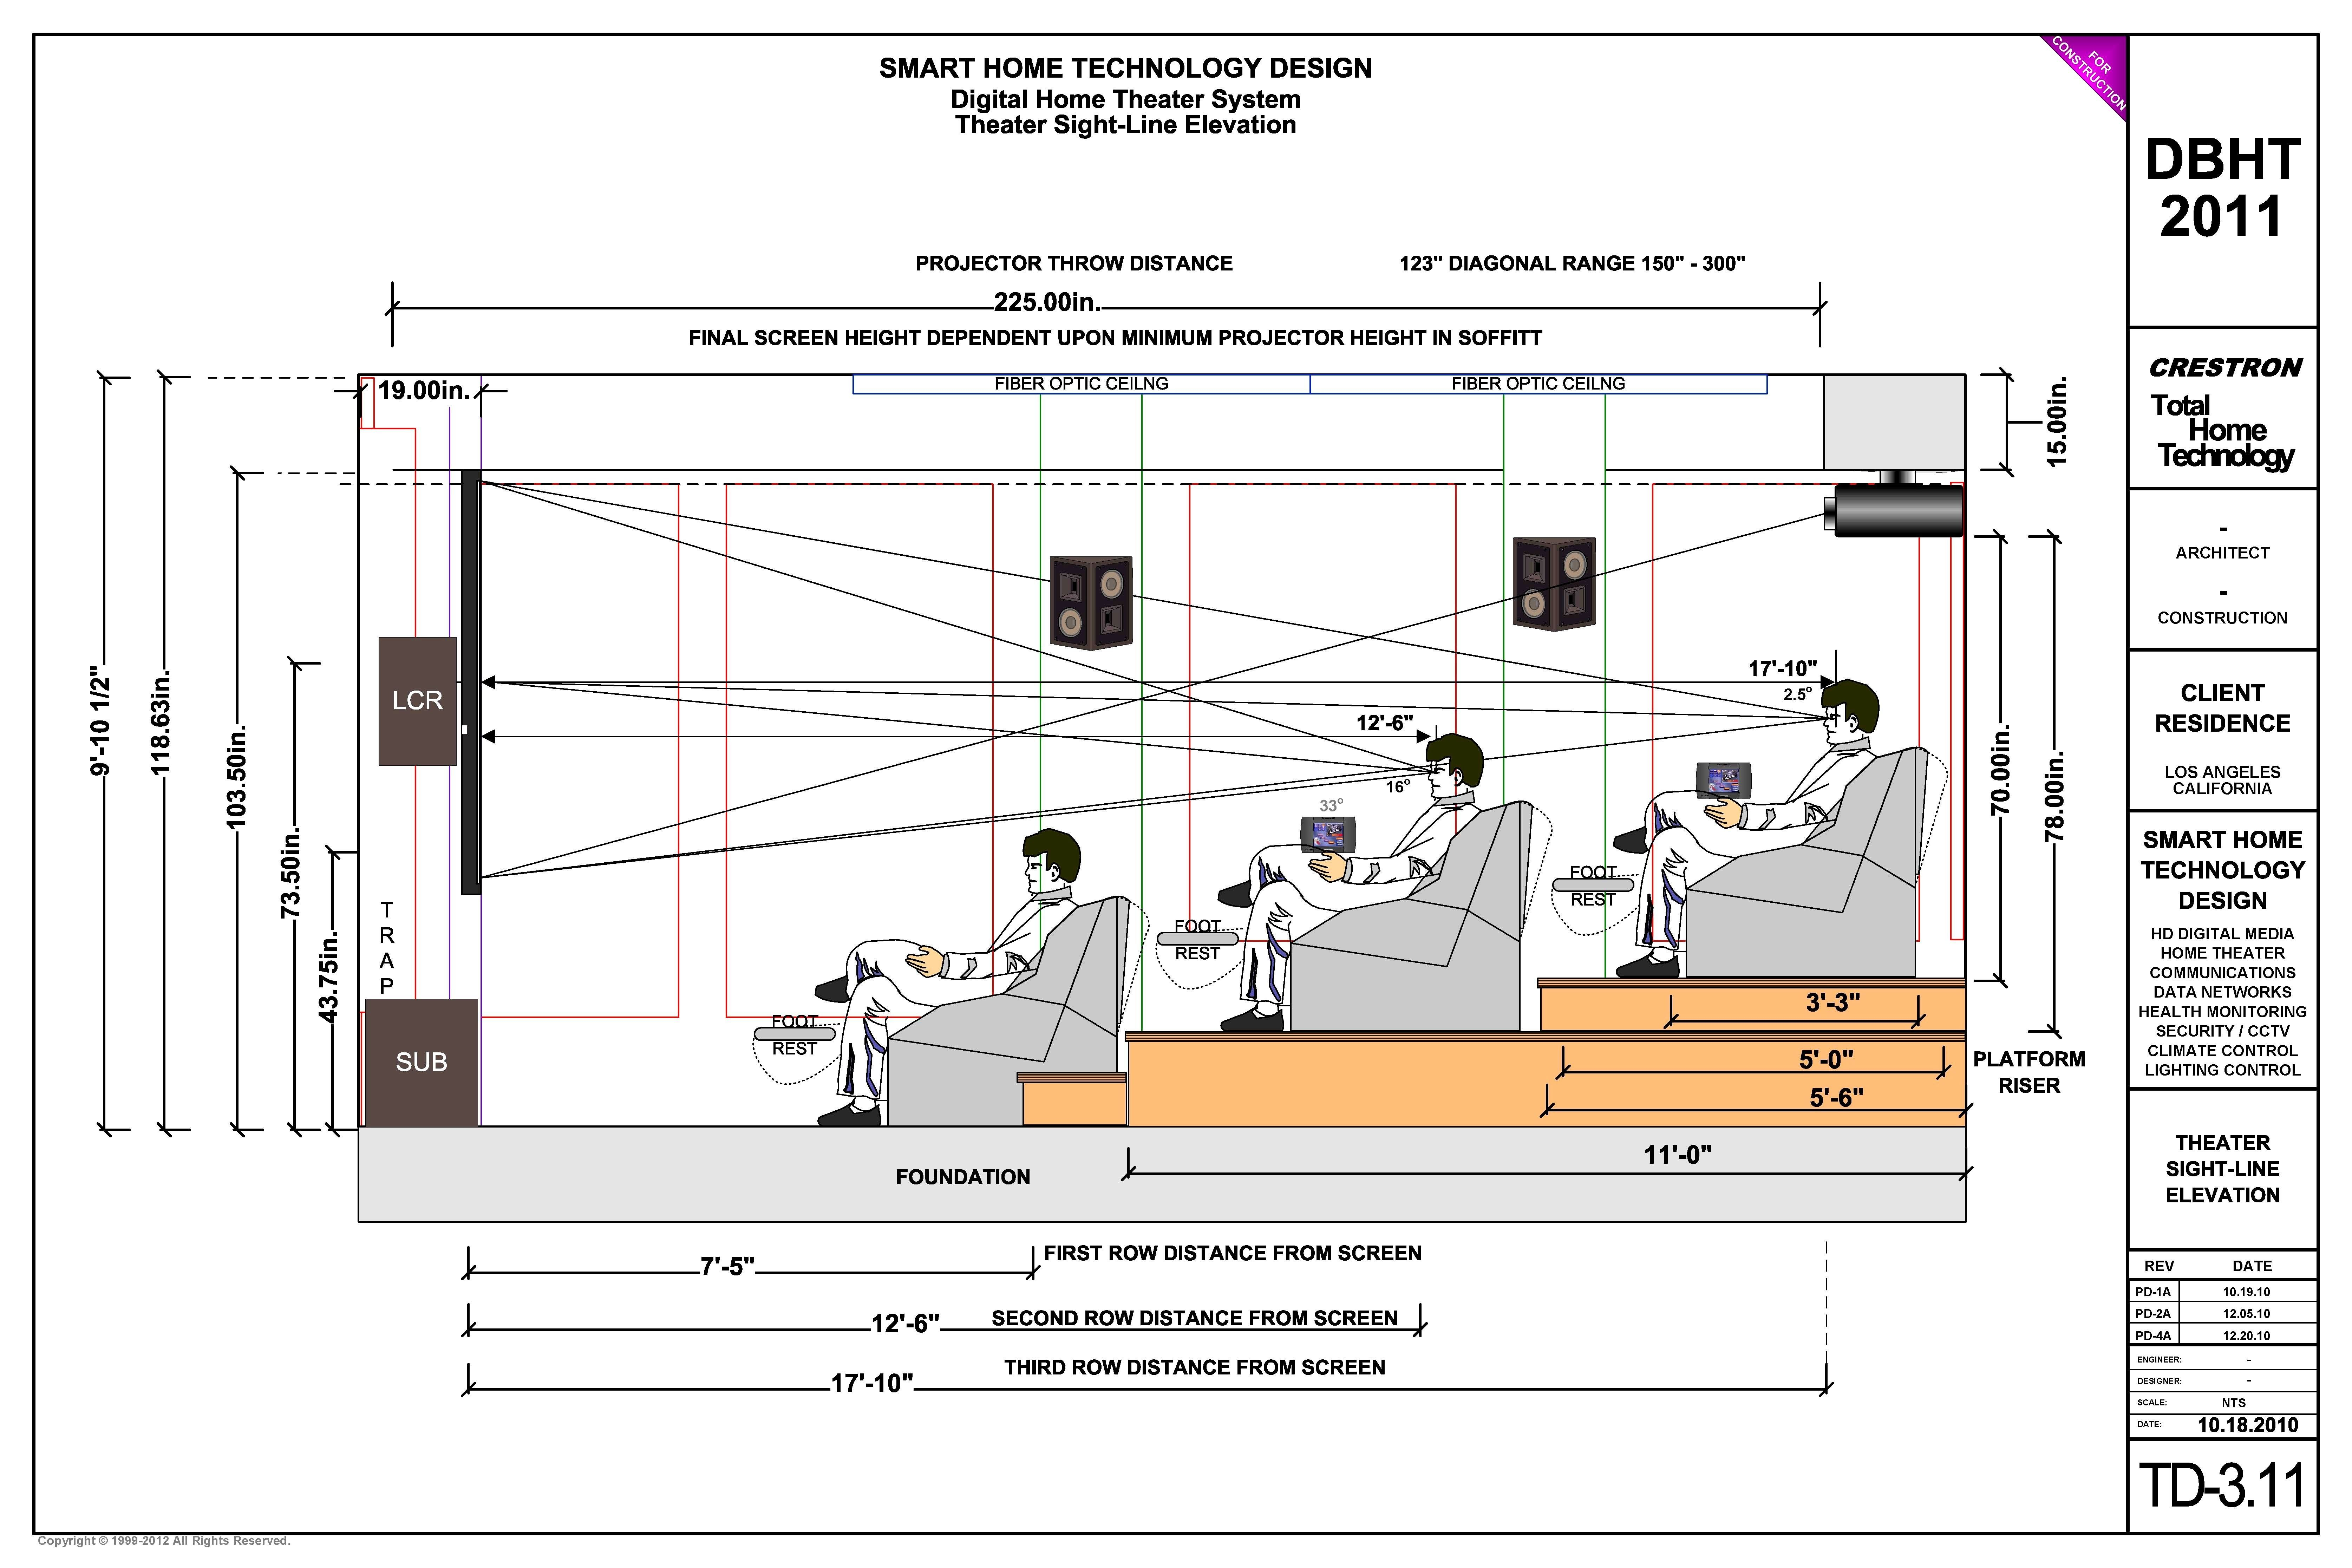 Unique Home Theater Wiring Diagram Sample Diagram Wiringdiagram Diagramming Diagramm Home Theater Room Design Home Theater Installation Home Theater Setup